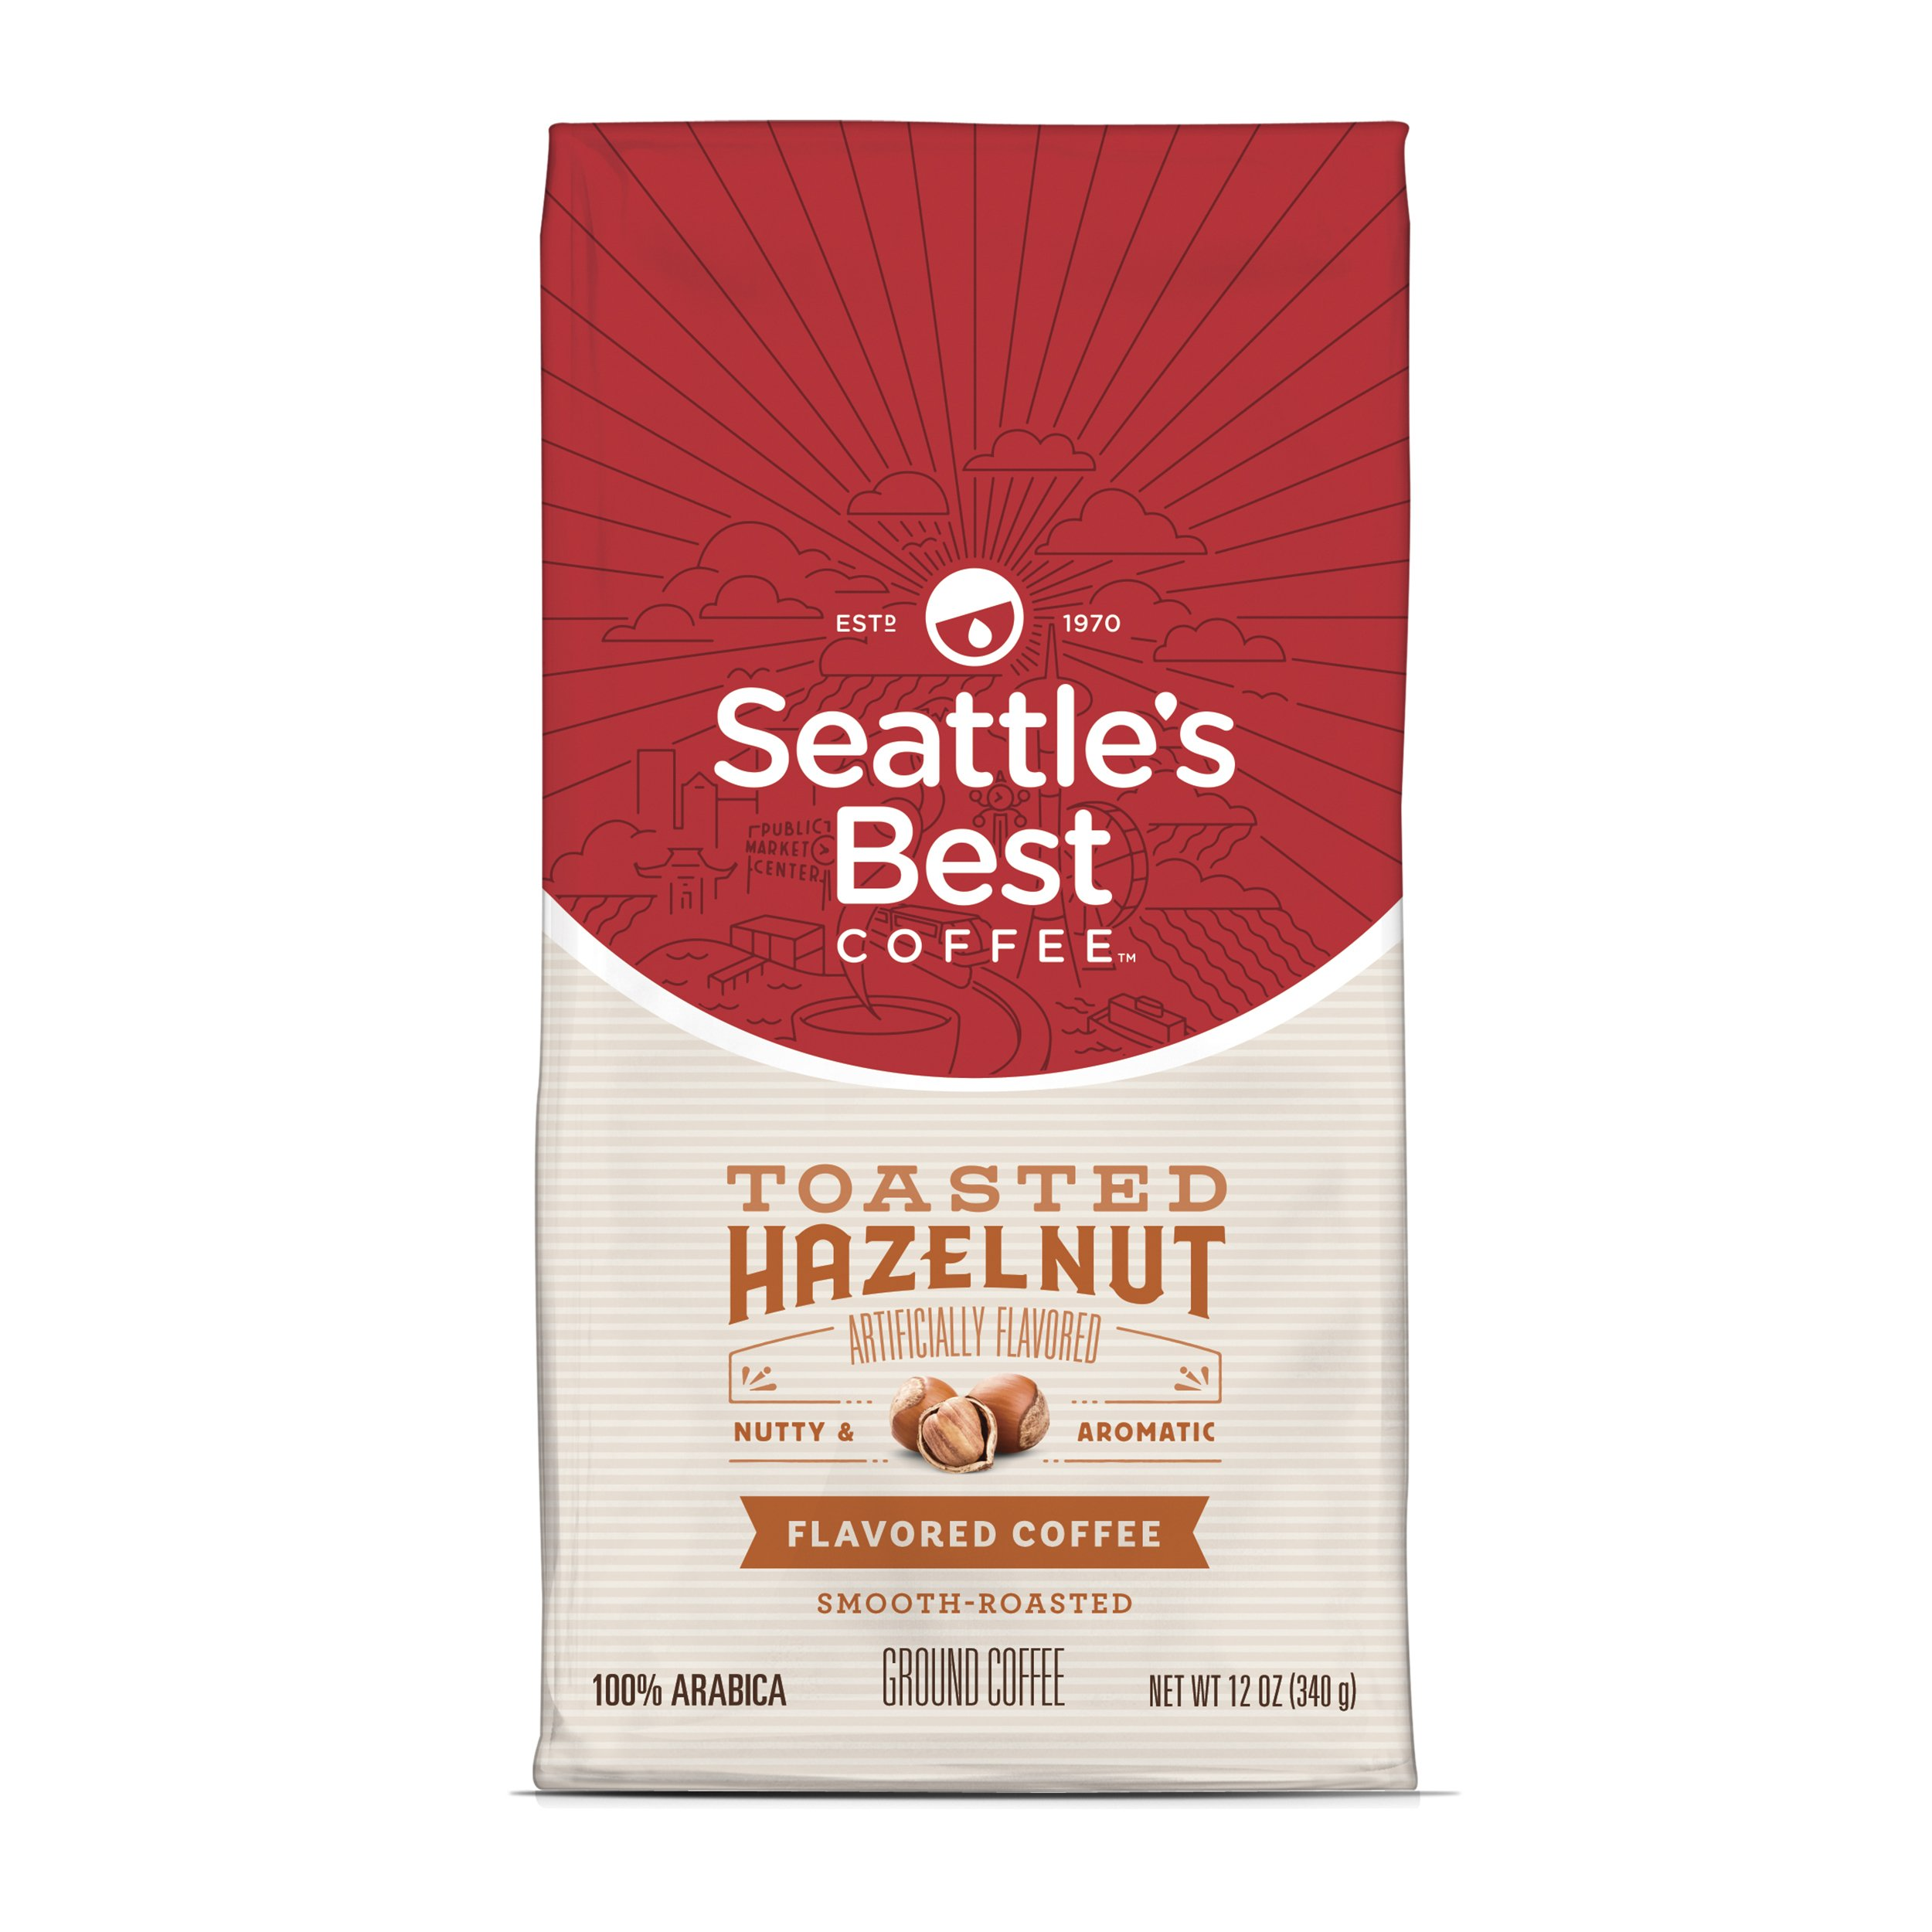 Seattle's Best Coffee Toasted Hazelnut Flavored Medium Roast Ground Coffee, 12 Ounce (Pack of 1)